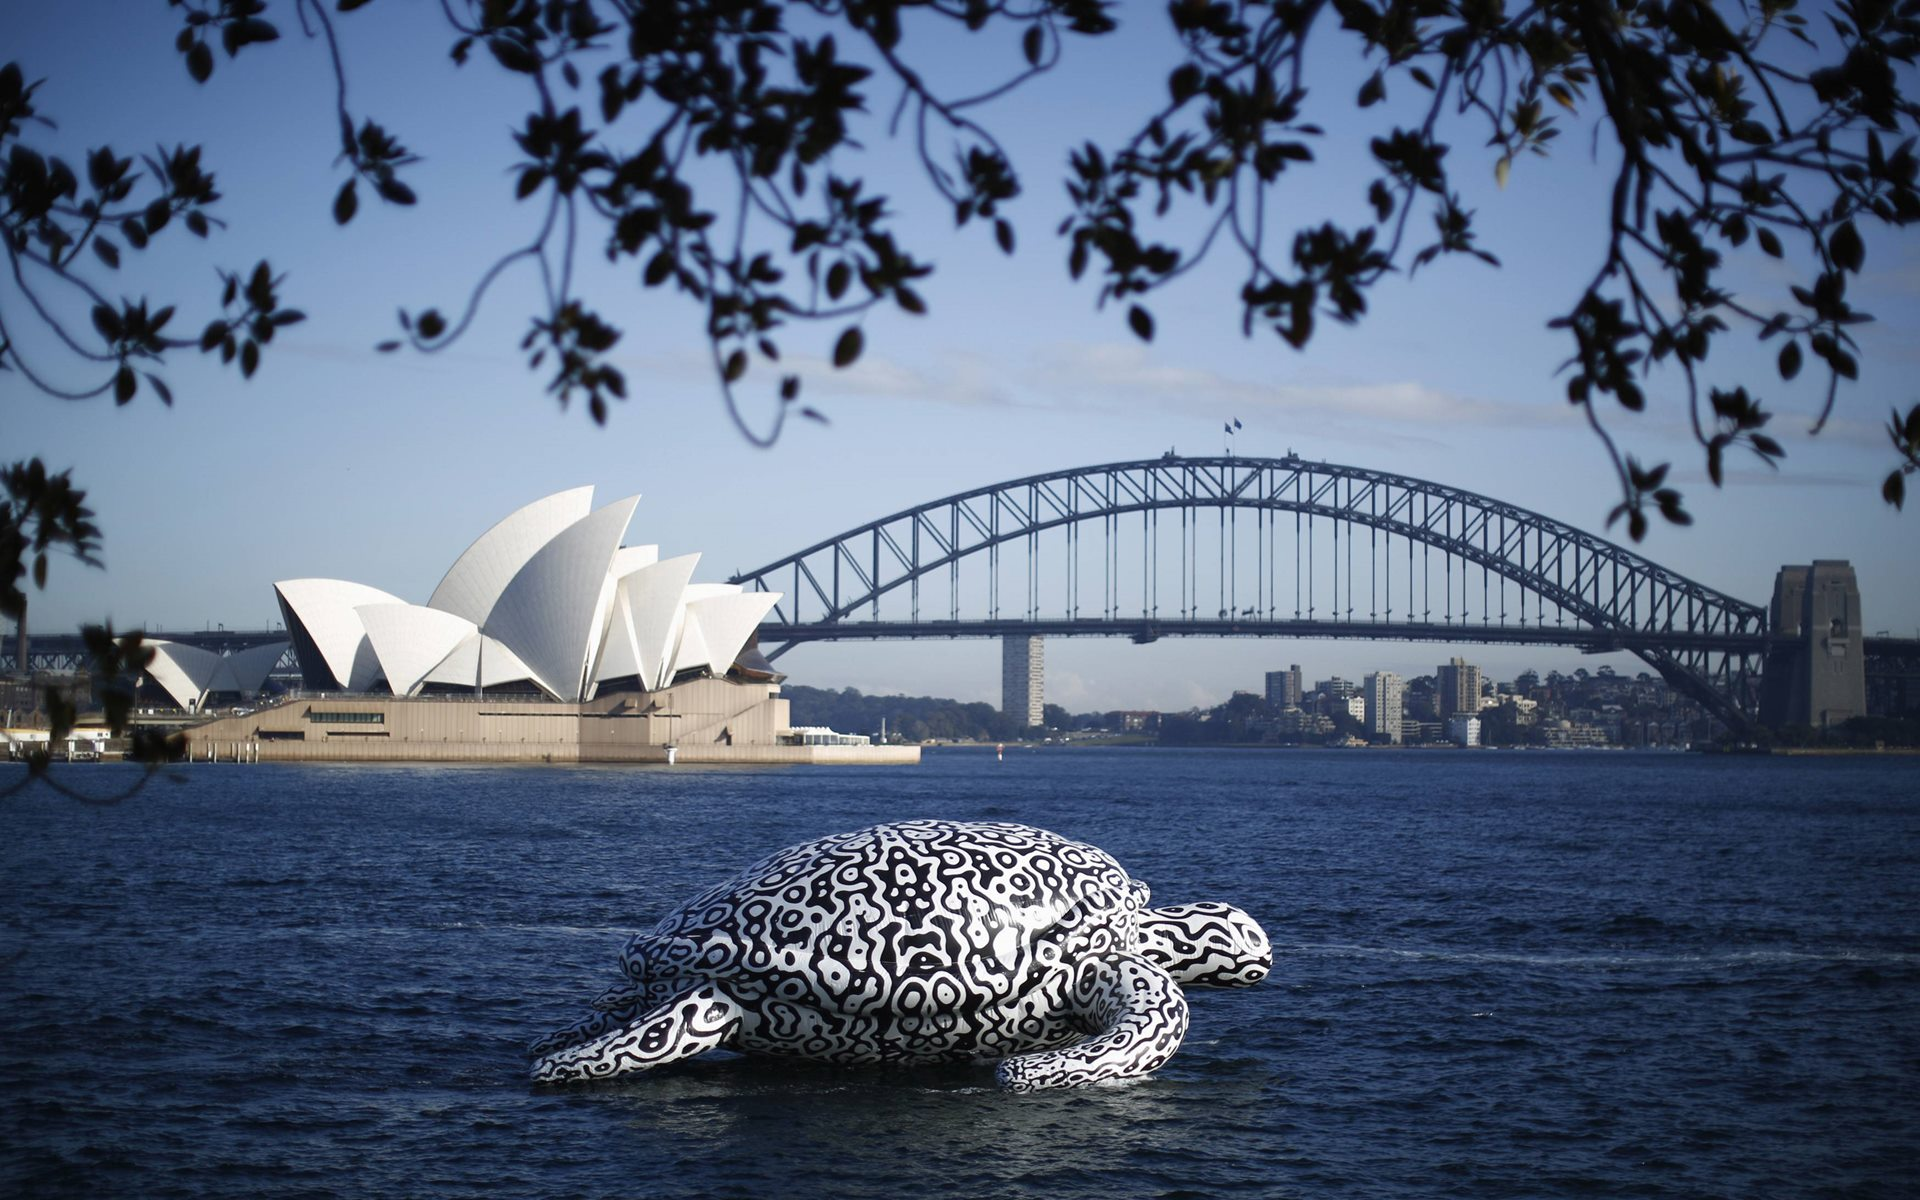 sydney harbour bridge opera house white turtle swimming on australia dektop images pictures wallpaper download free pics